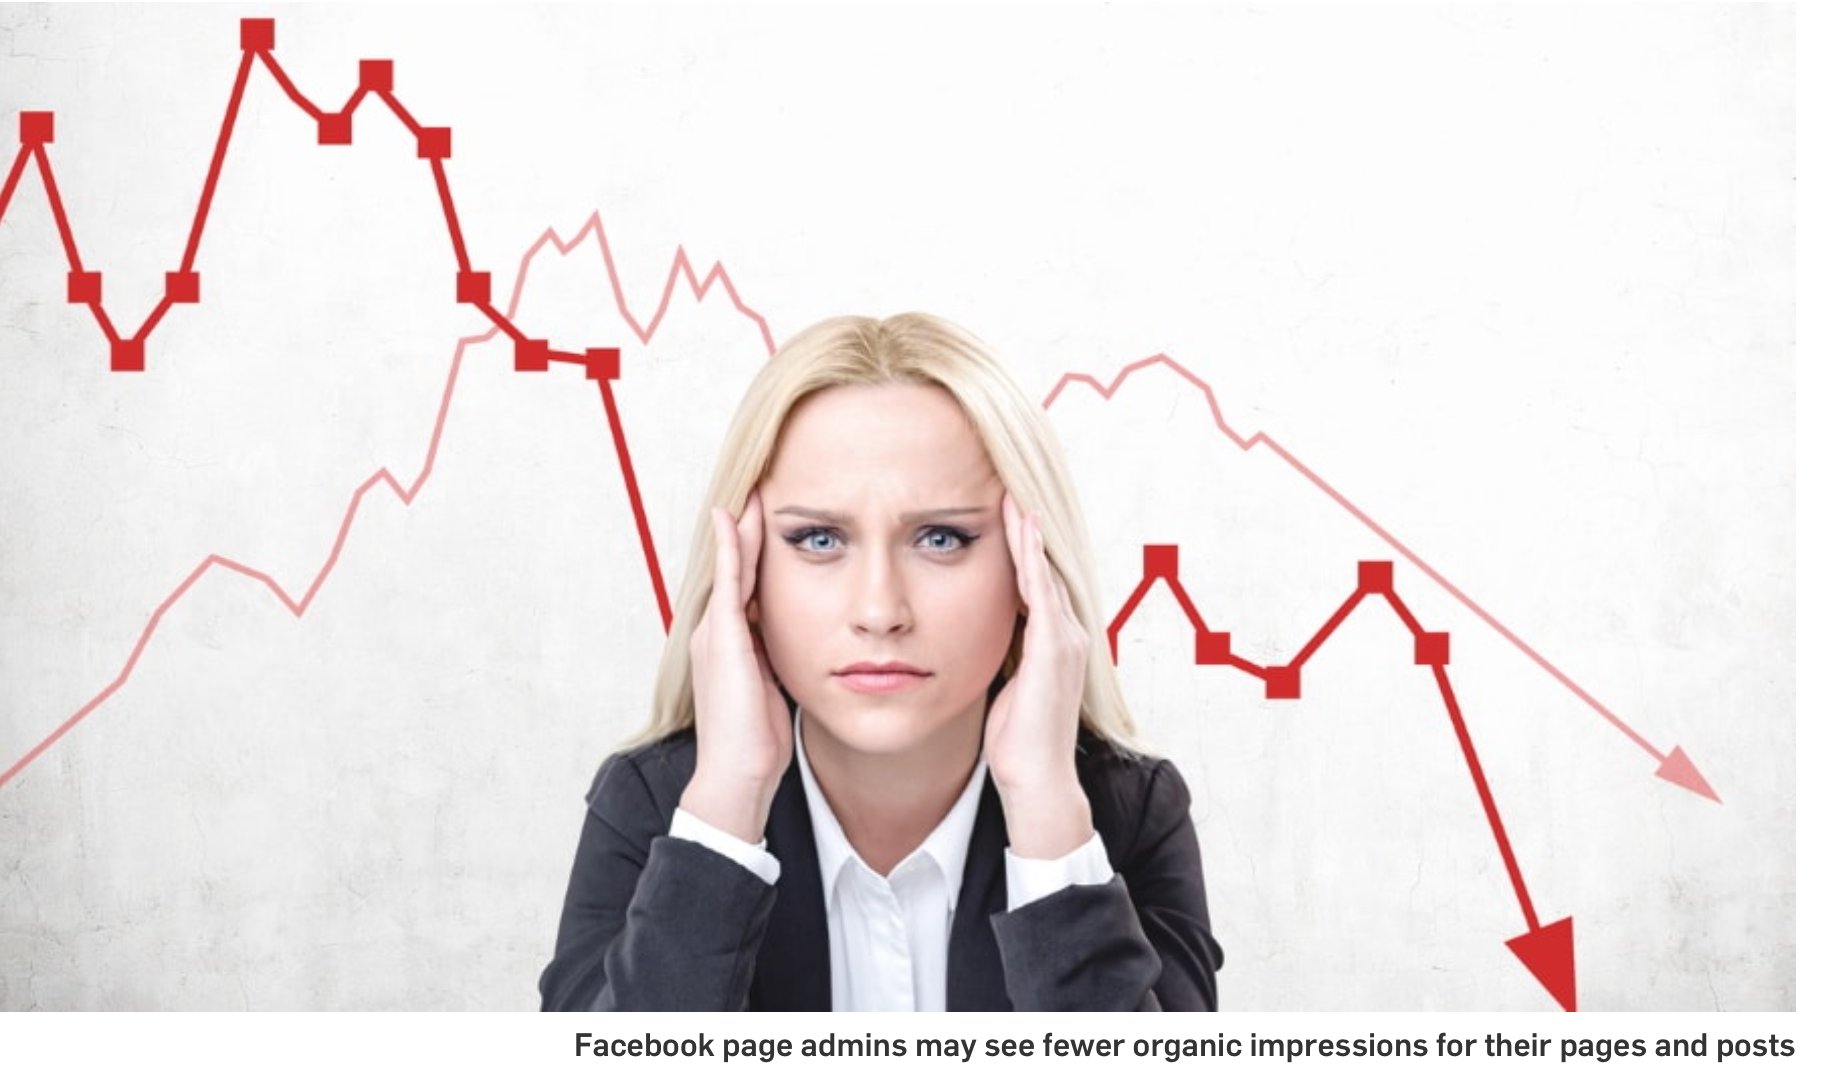 Facebook's Tweak May Cause Organic Page Impressions to Drop